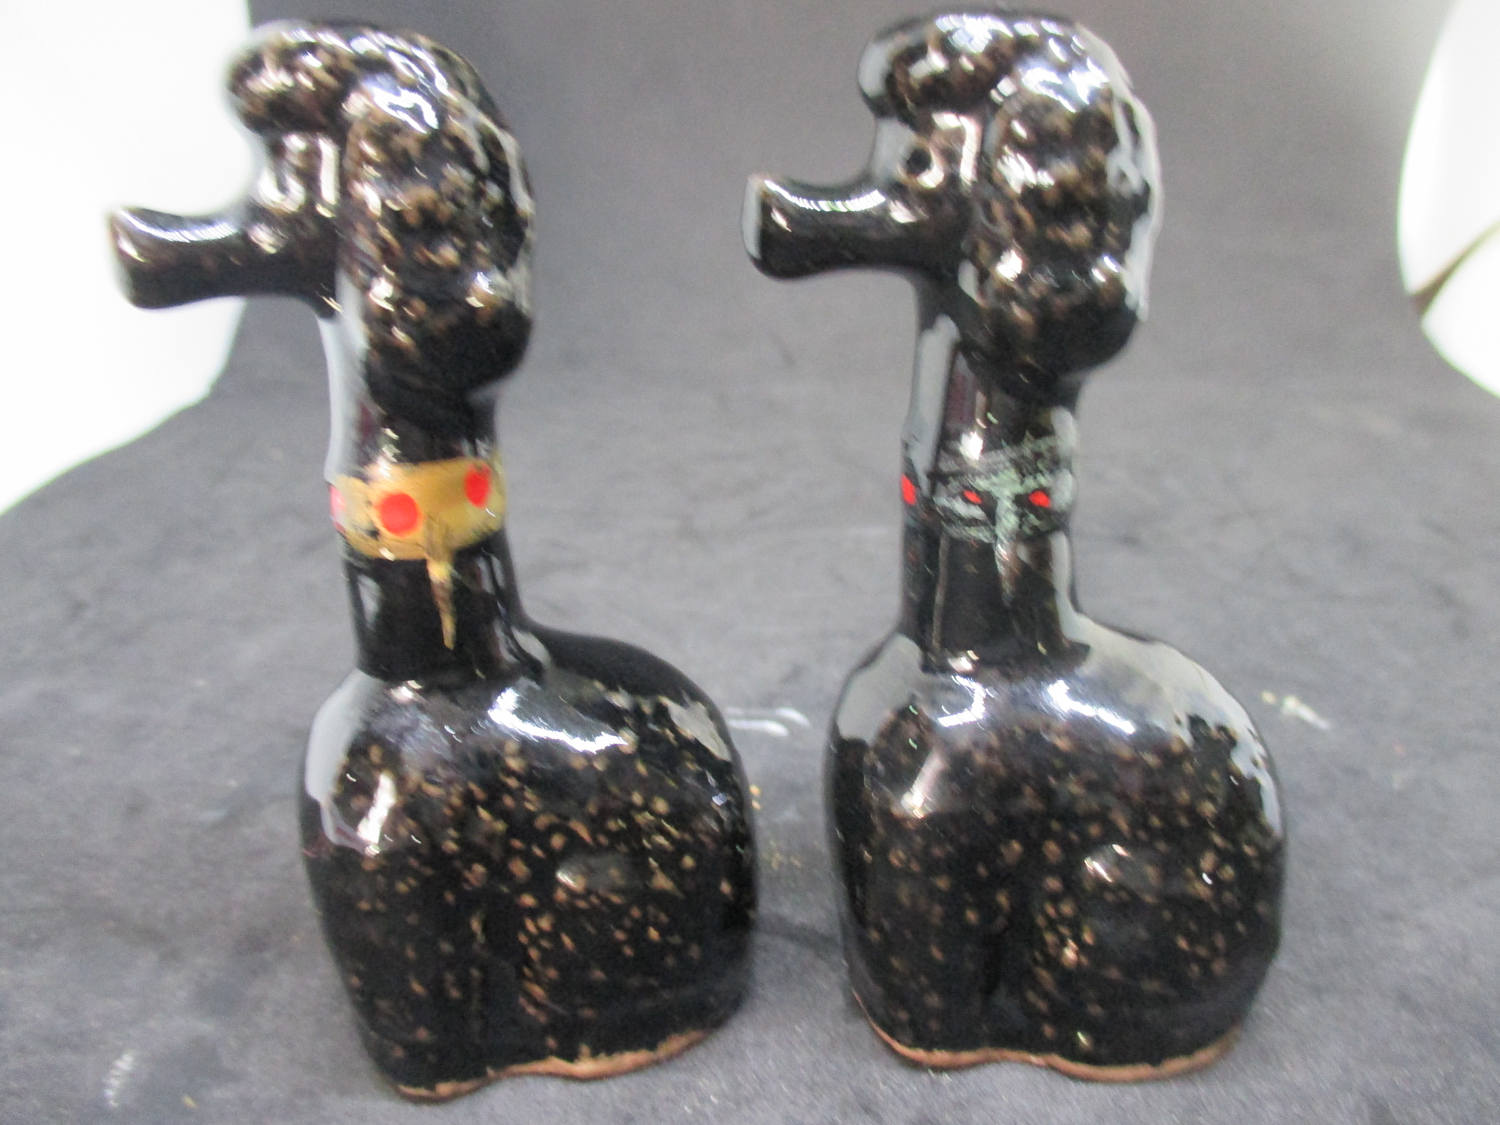 Black Tall Poodles Salt & Pepper Shakers decor collectible display tableware dinning kitchen farmhouse cottage war time Japan Pottery